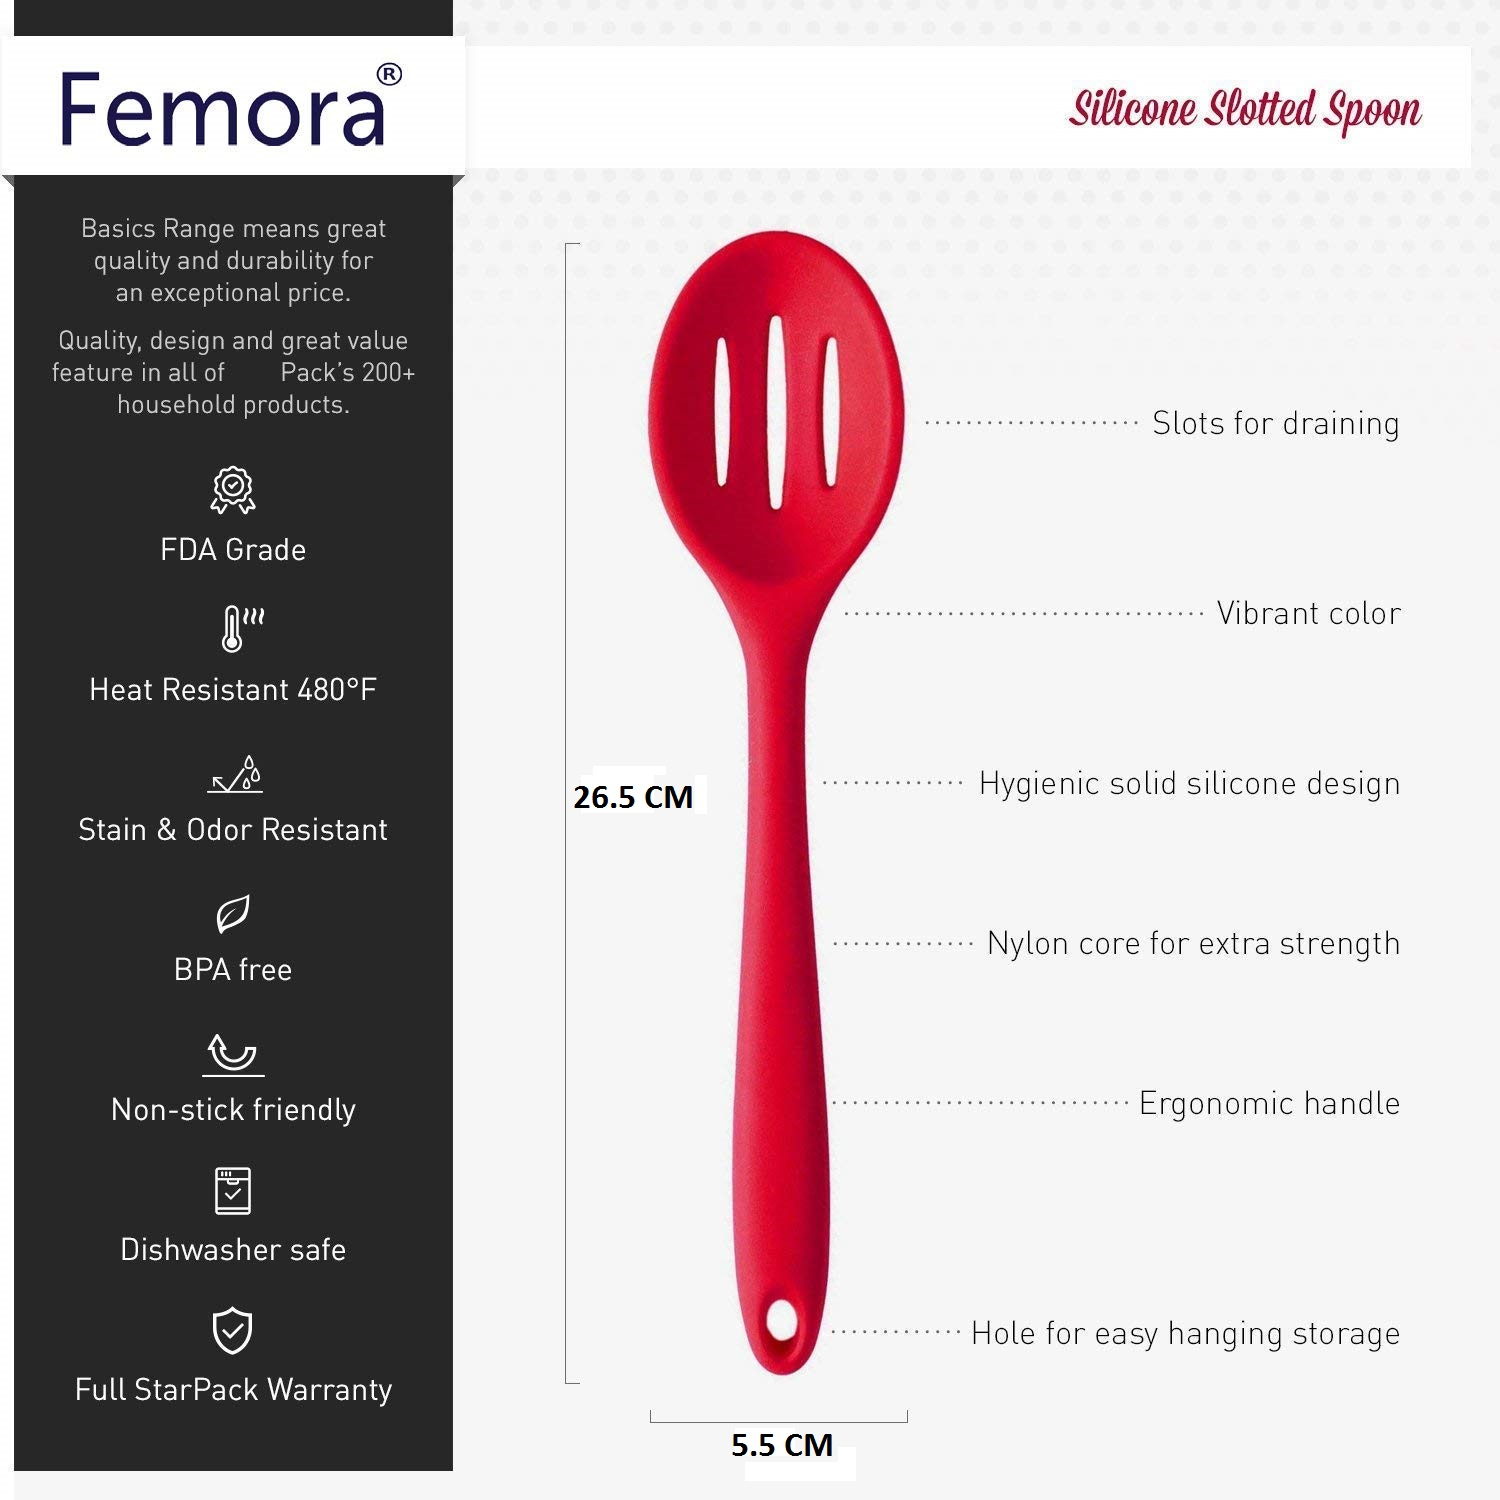 Silicone Premium Slotted Spoon with Grip Handle